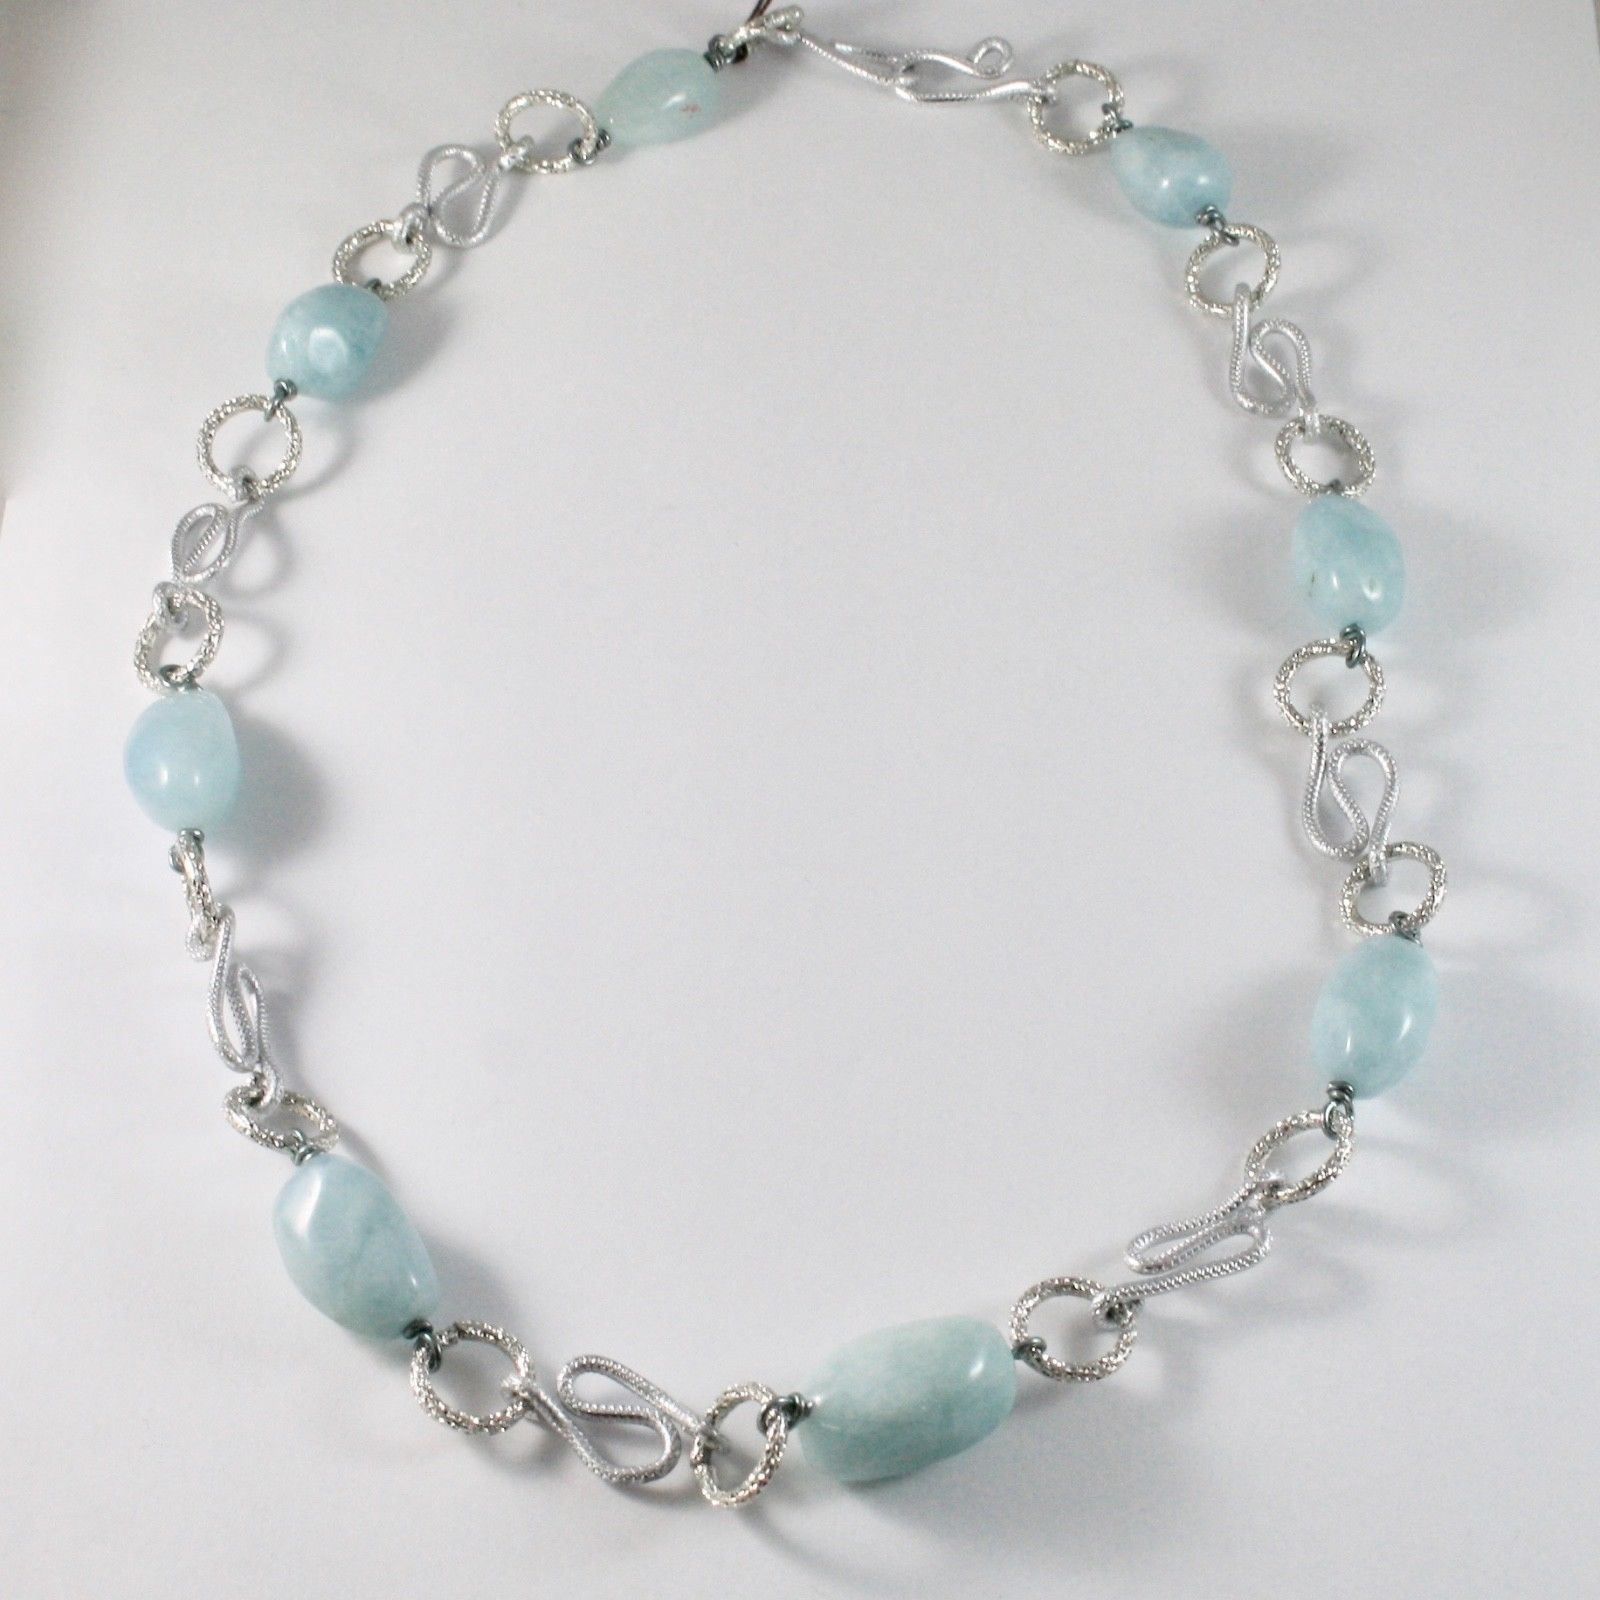 NECKLACE THE ALUMINIUM LONG 60 CM WITH AQUAMARINE BLUE BLUE